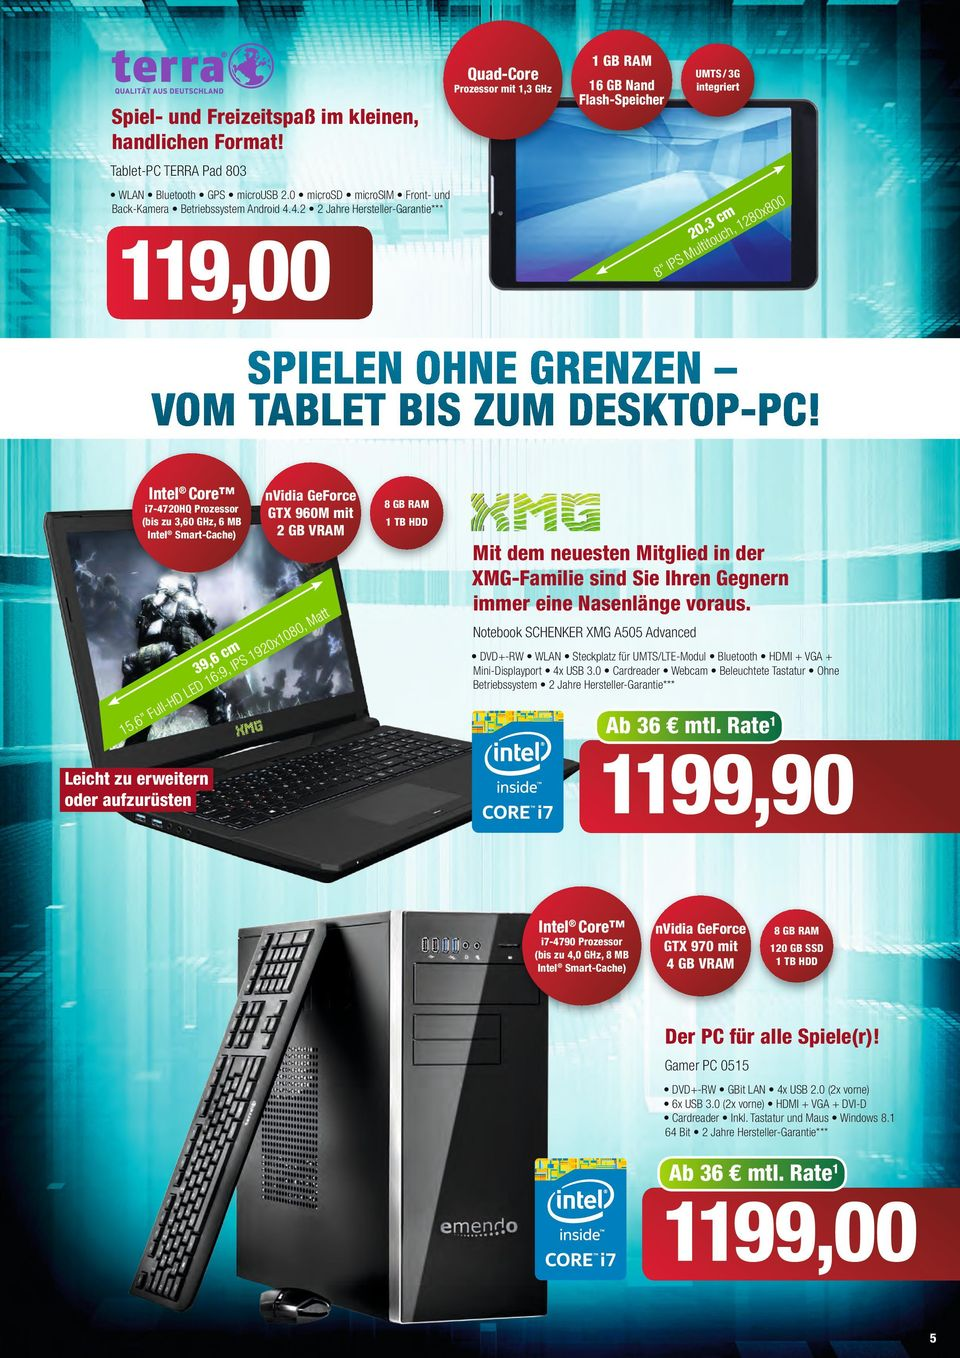 i7-4720hq Prozessor (bis zu 3,0 GHz, MB nvidia GeForce GTX 90M it 2 GB VRAM x 0, 08 0 c 92, S 39 :9, IP HD ll Fu LED, Leicht zu erweitern oder aufzurüsten tt Ma TB HDD Mit de neuesten Mitglied in der